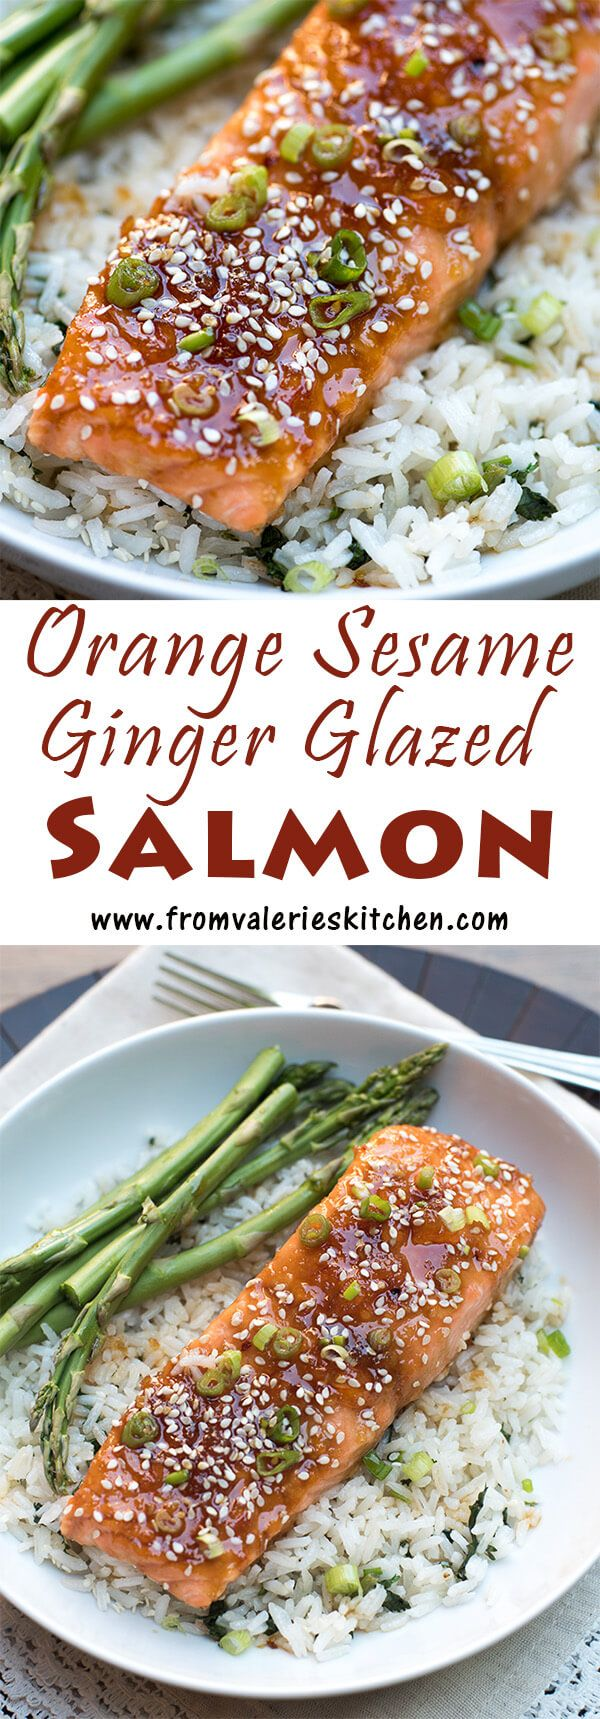 A slightly sweet and super flavorful glaze creates this irresistible Orange Sesame Ginger Glazed Salmon. Super simple to prepare, ready in under 30 minutes! ~ http://www.fromvalerieskitchen.com